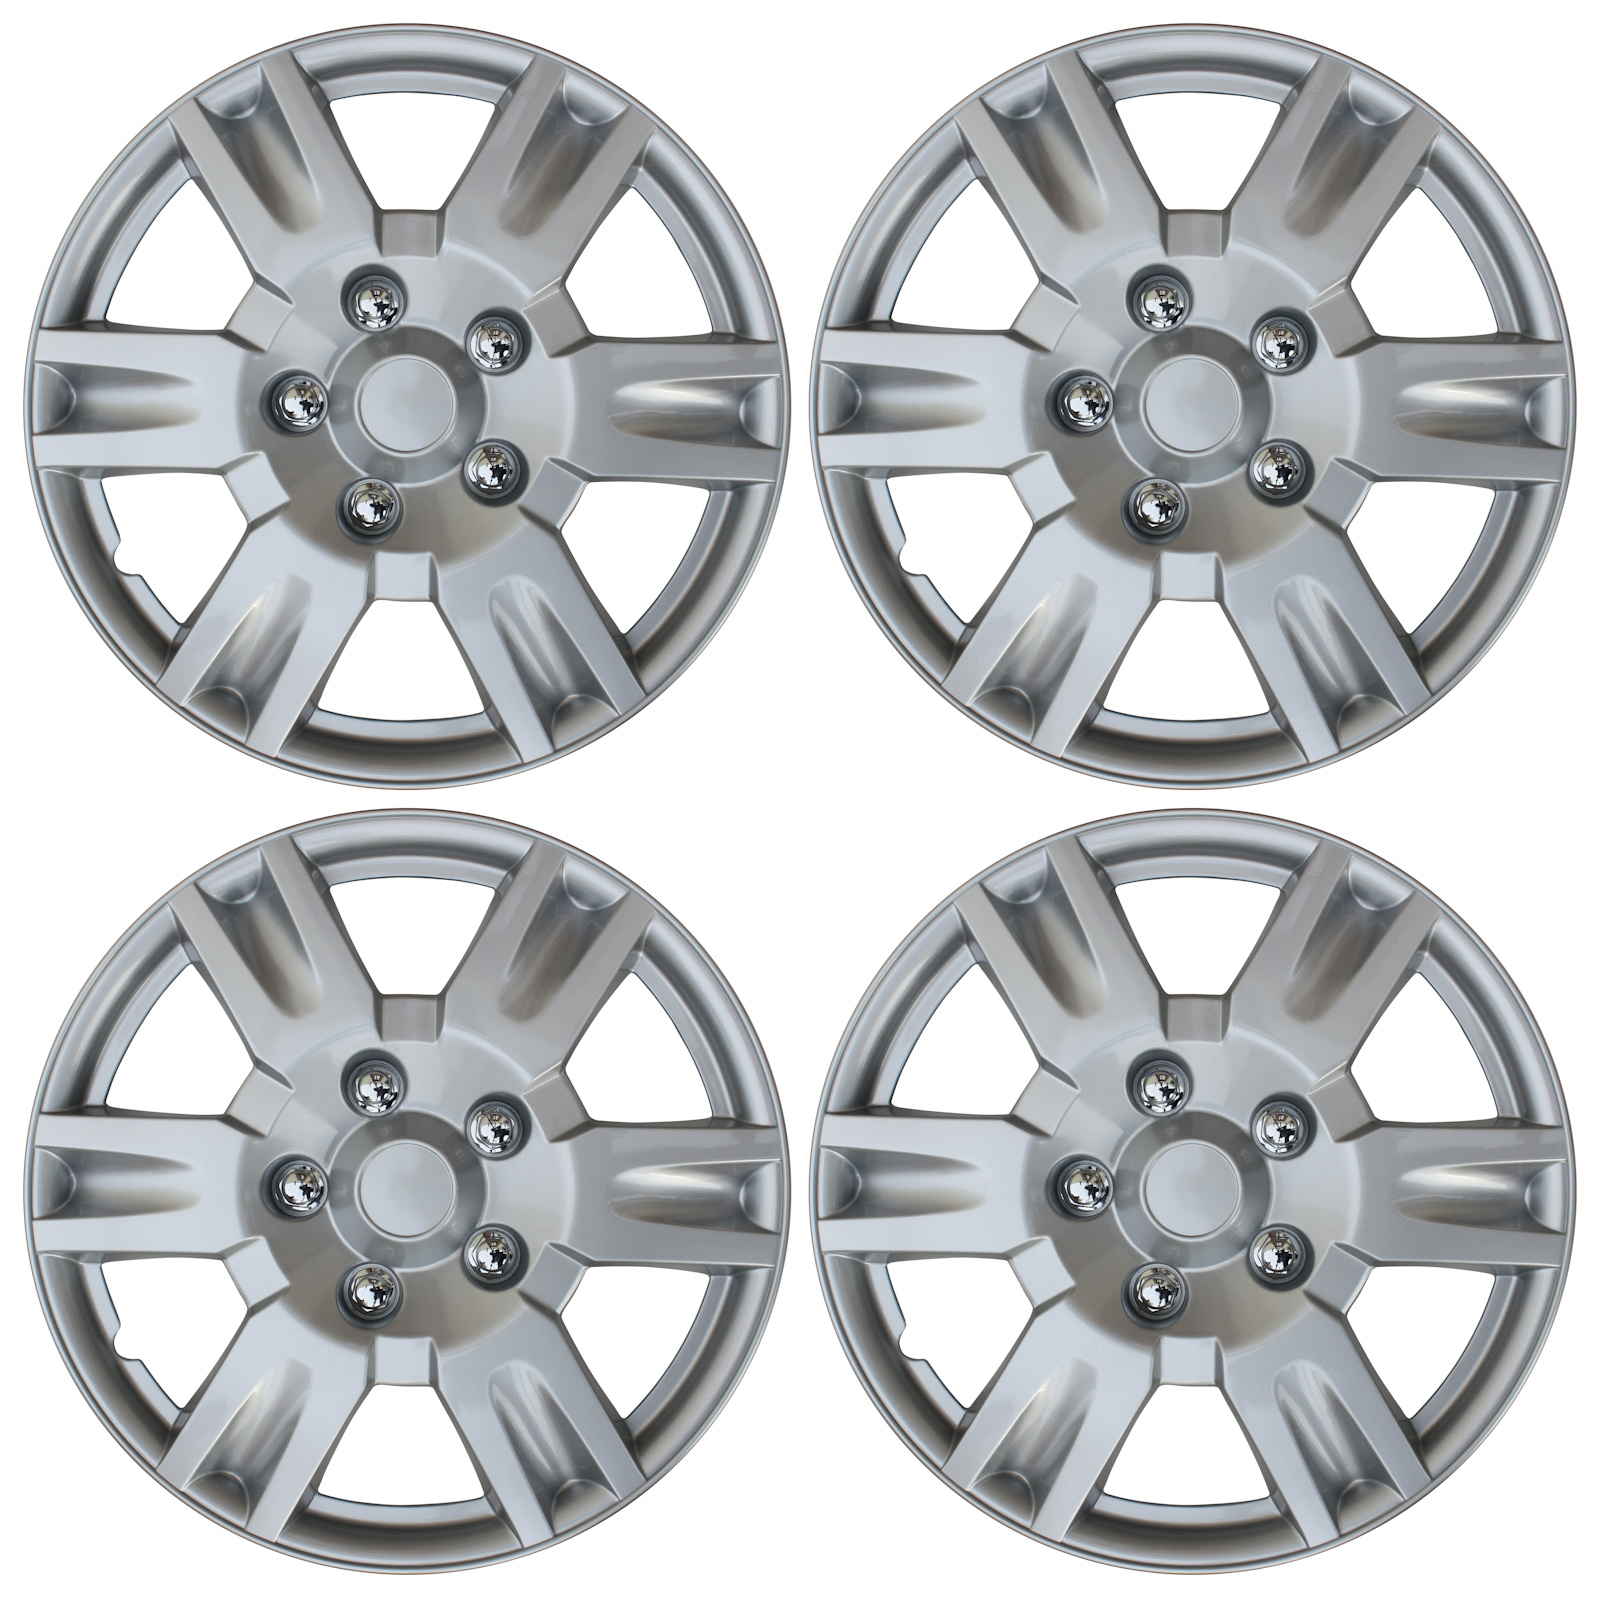 4 piece set silver lacquer hub caps fits 16 inch wheel cover skin covers cap